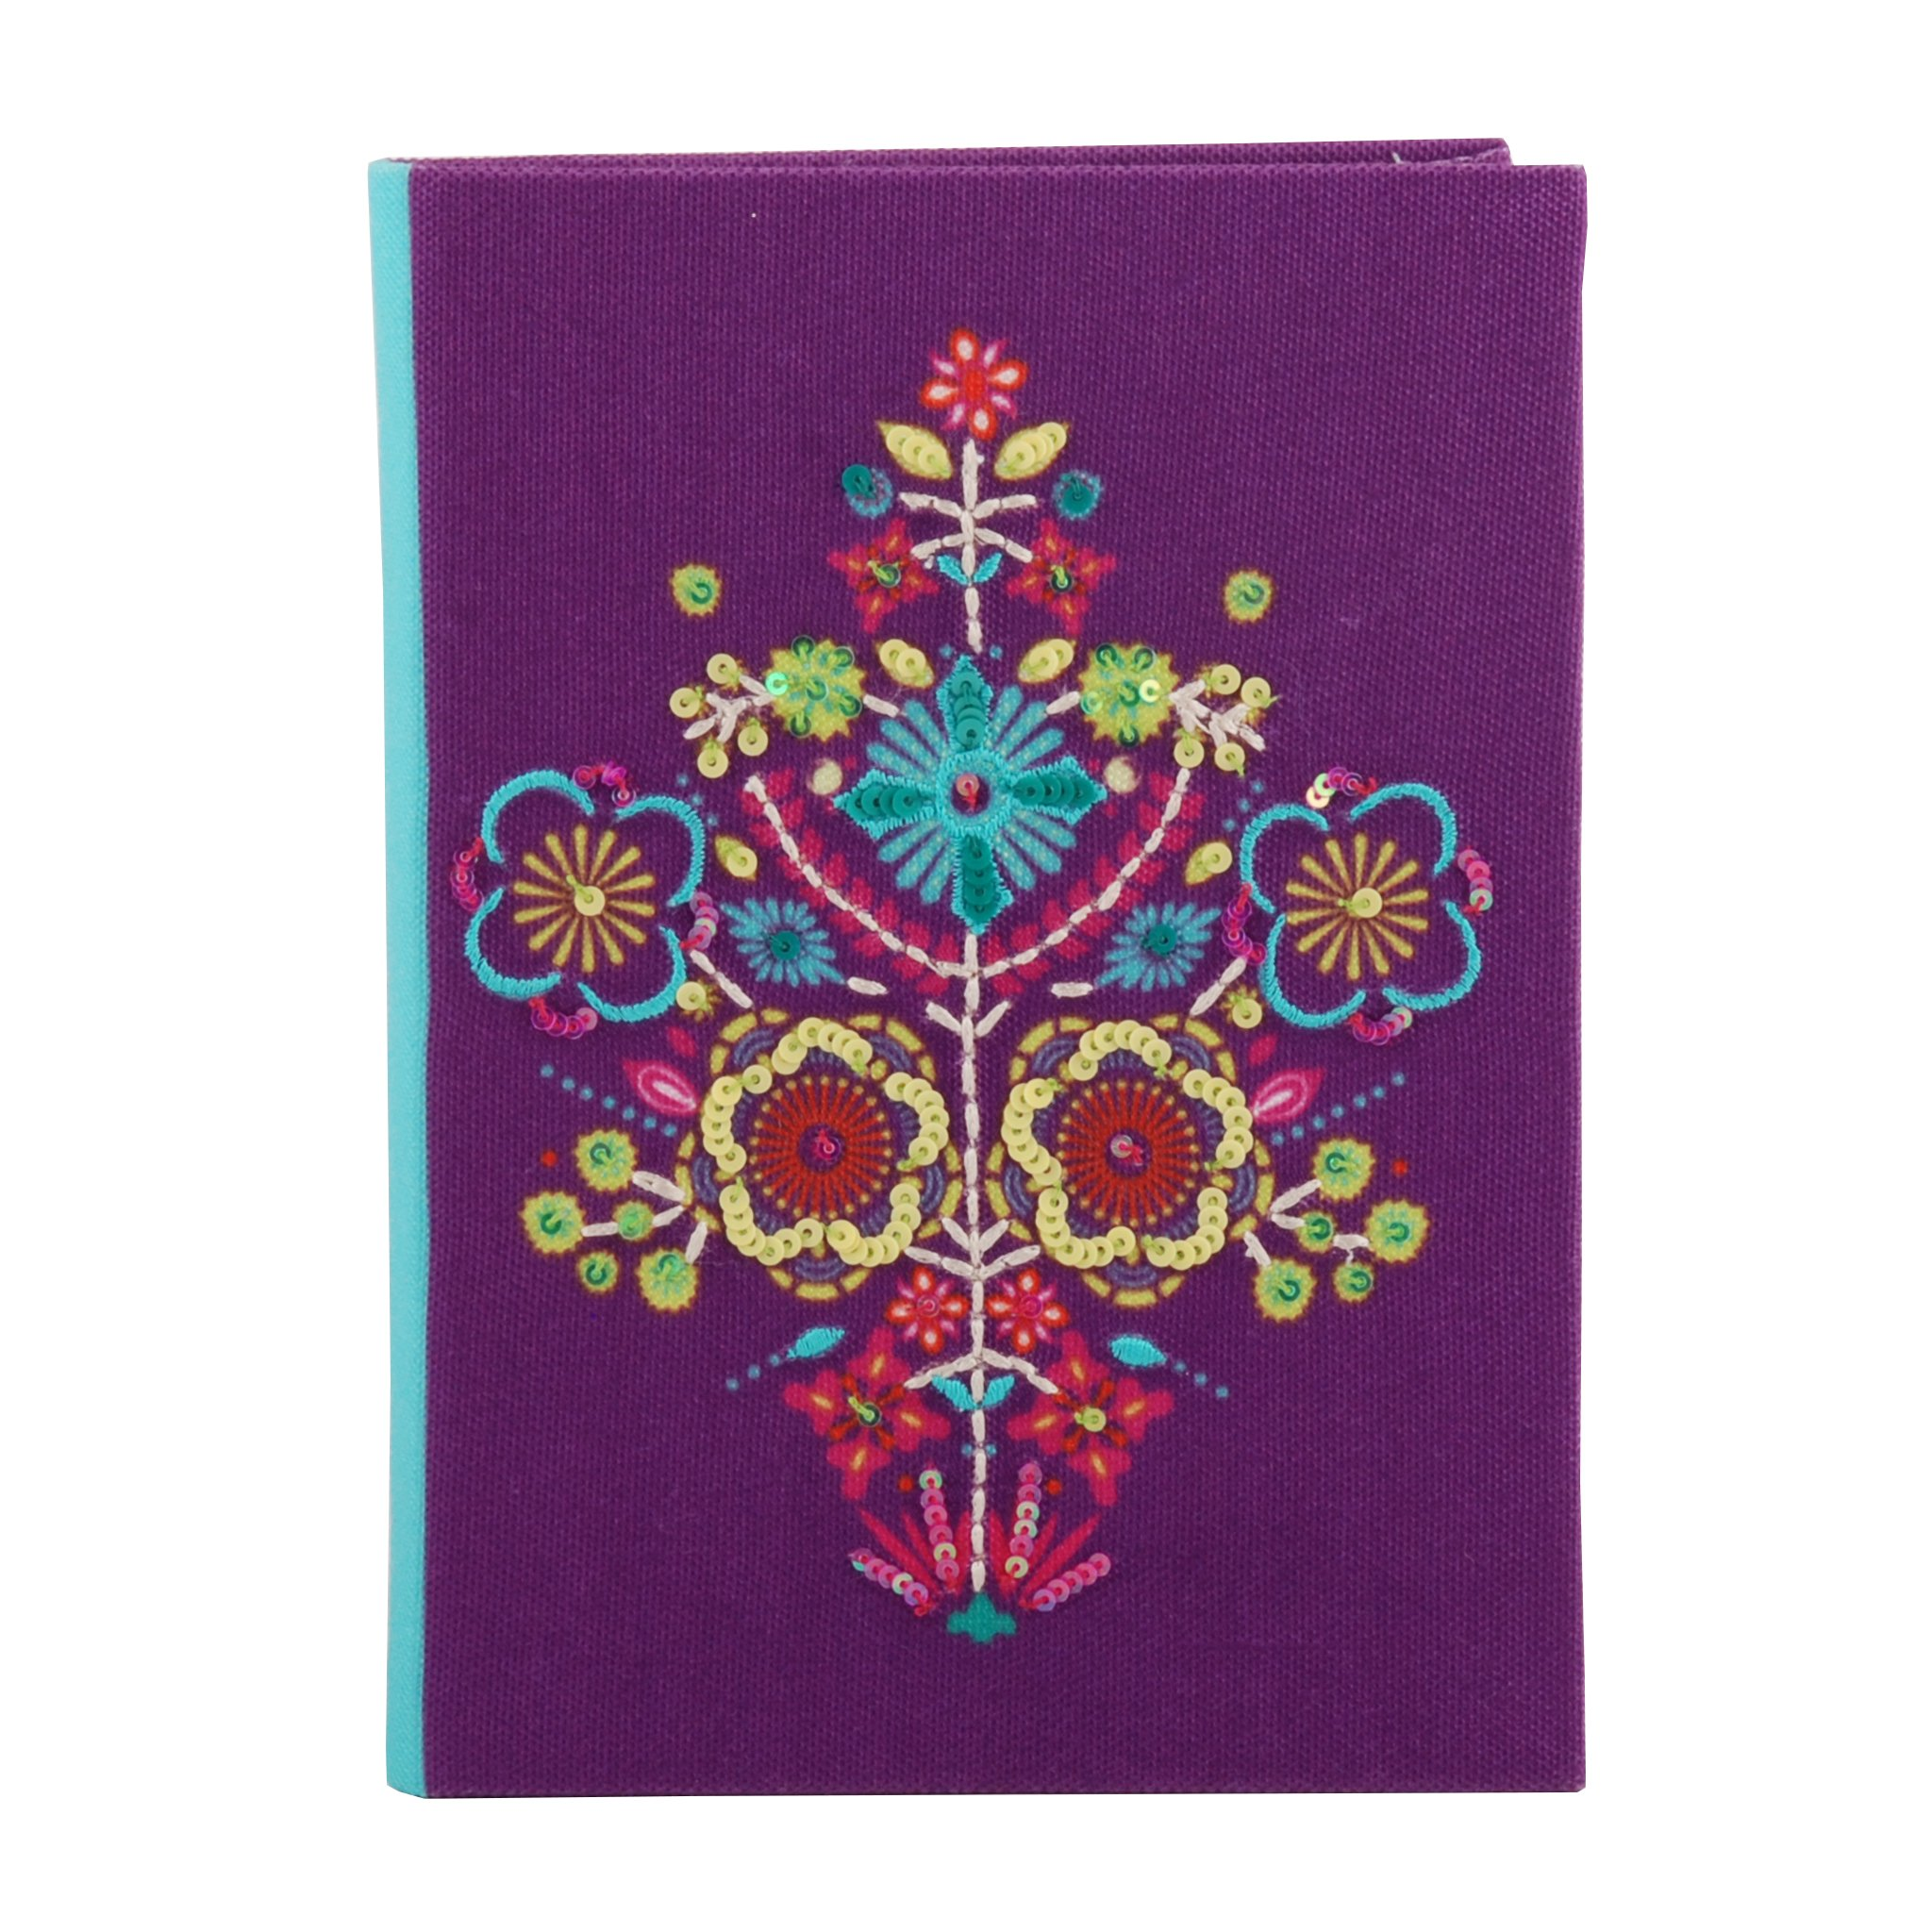 Classic Fabric Cover Notebook Journal Diary College Ruled Story Writing in Paper for Men Women & Girls with Bookmark Enclosed Perfect for Travel (7 in x 5 in)